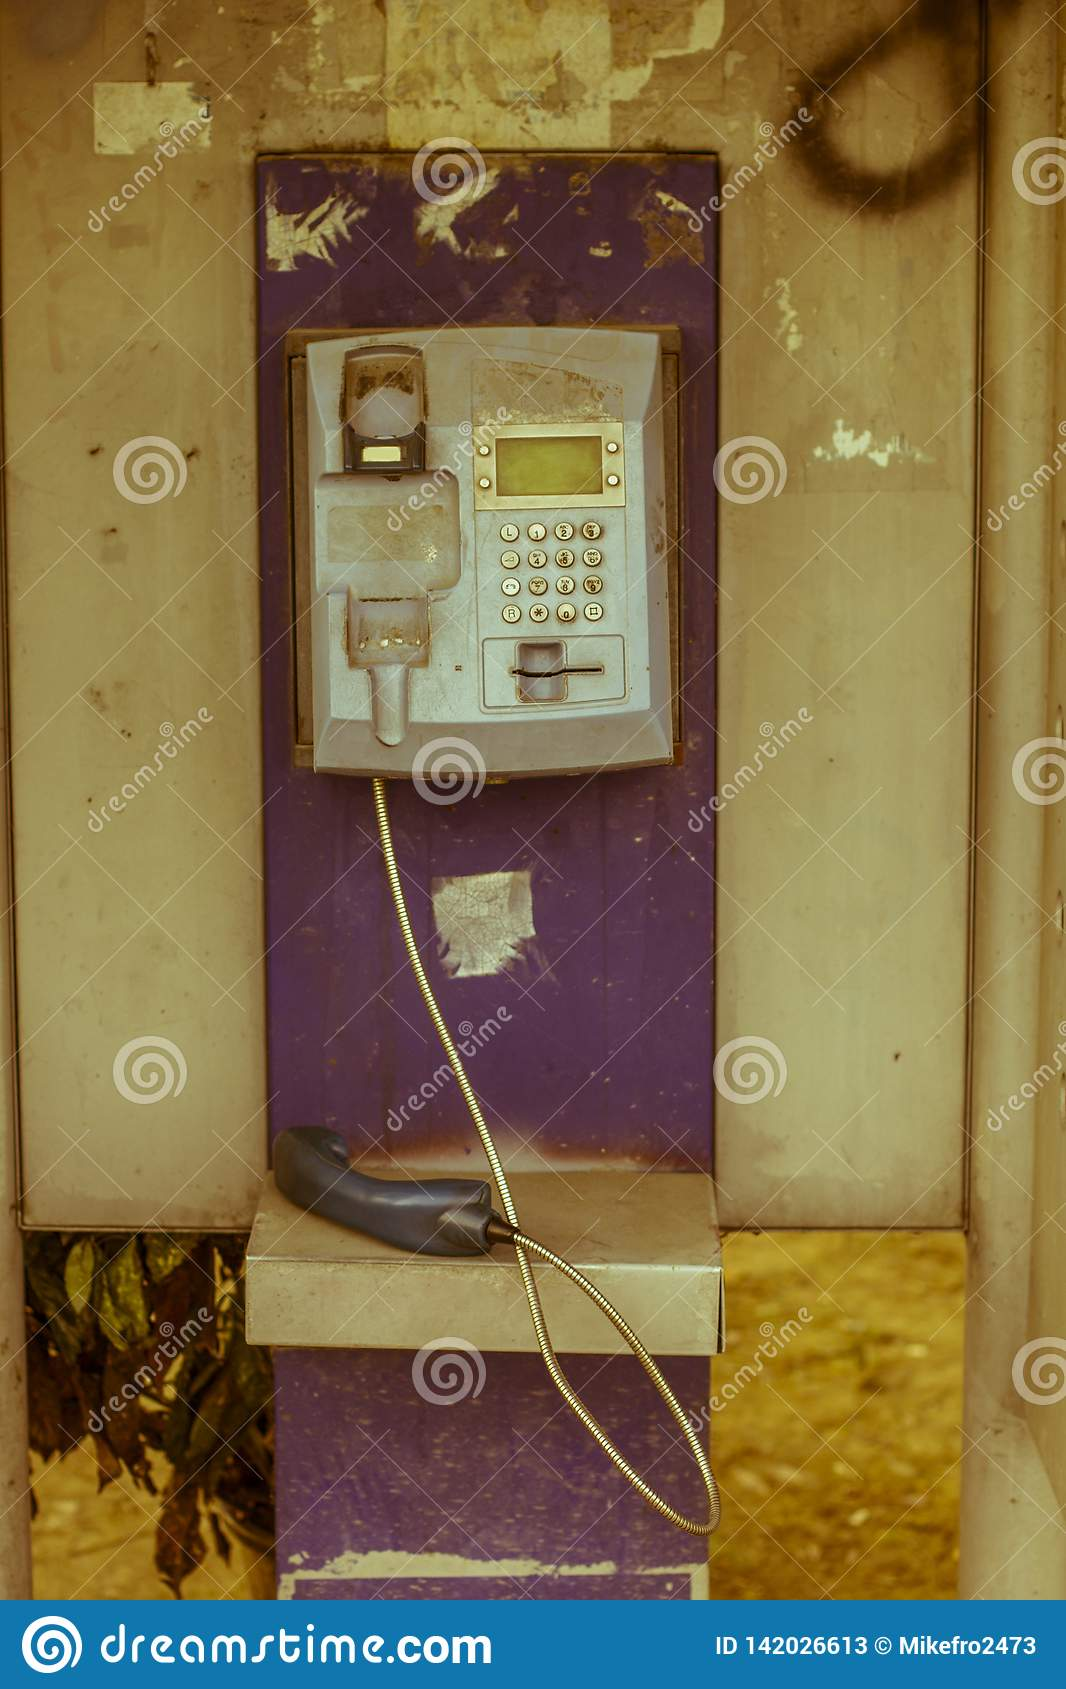 Old payphone out of service in the city